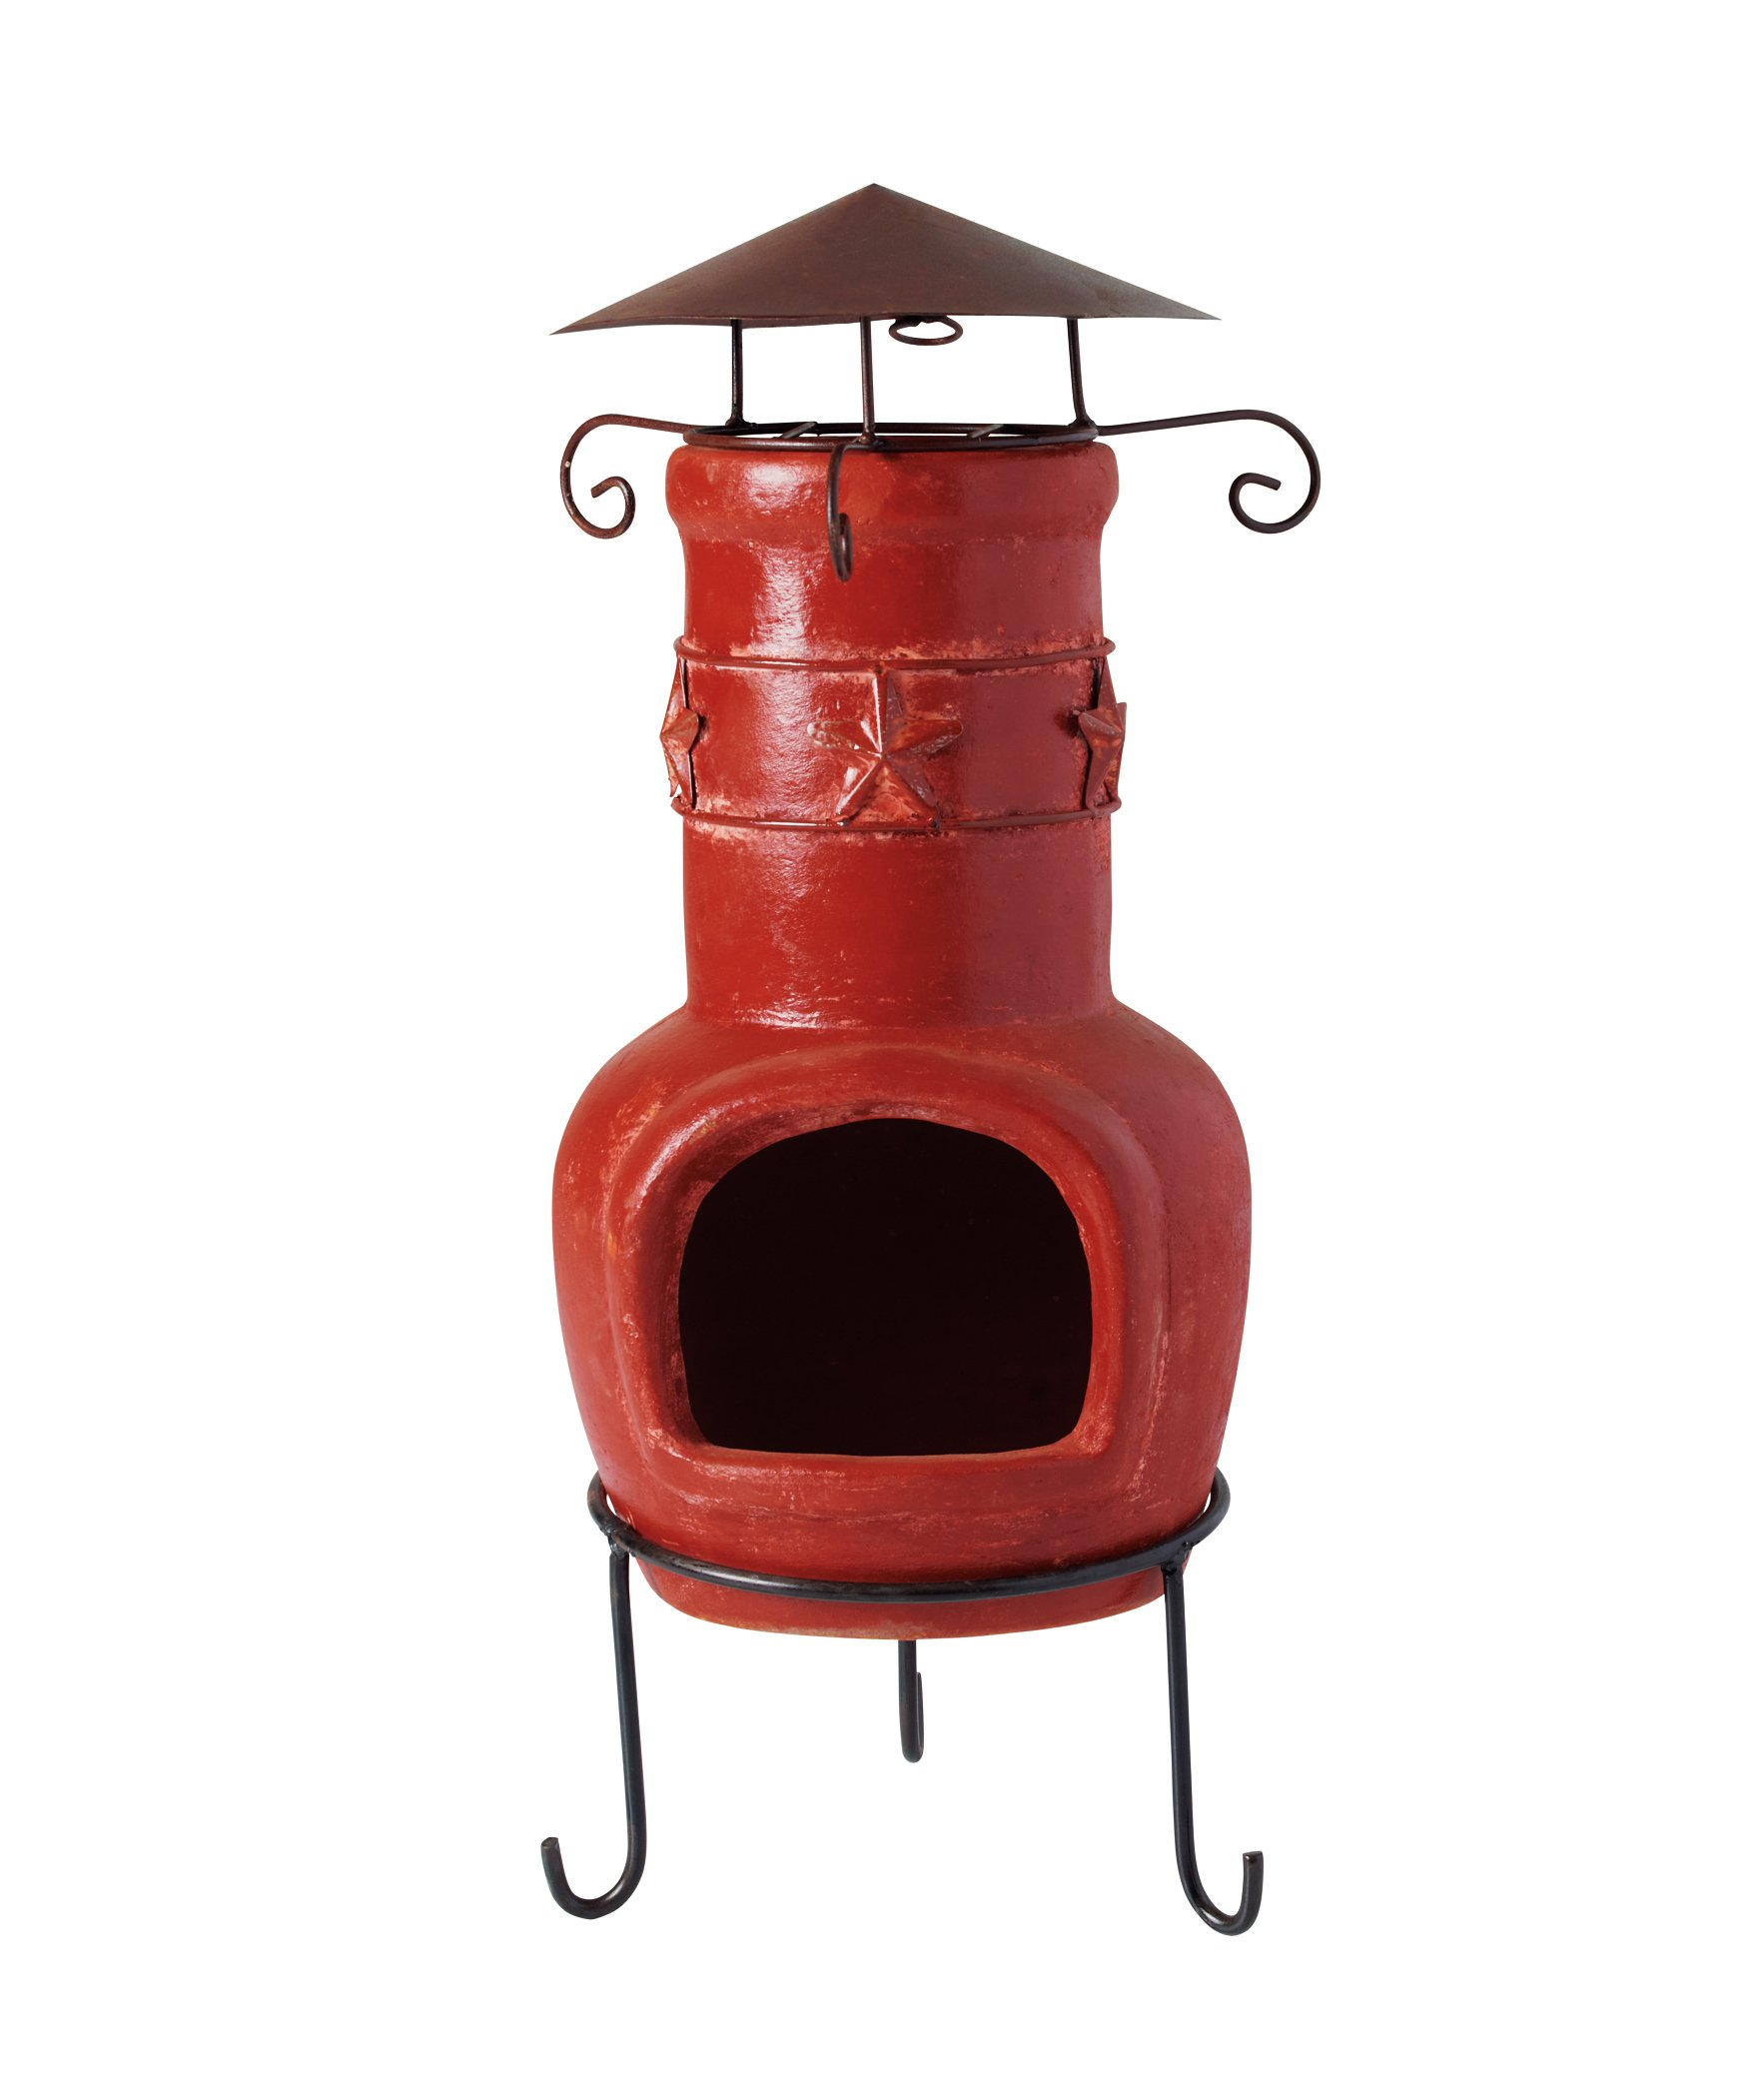 Outdoor Decor Shop HEB Everyday Low Prices line